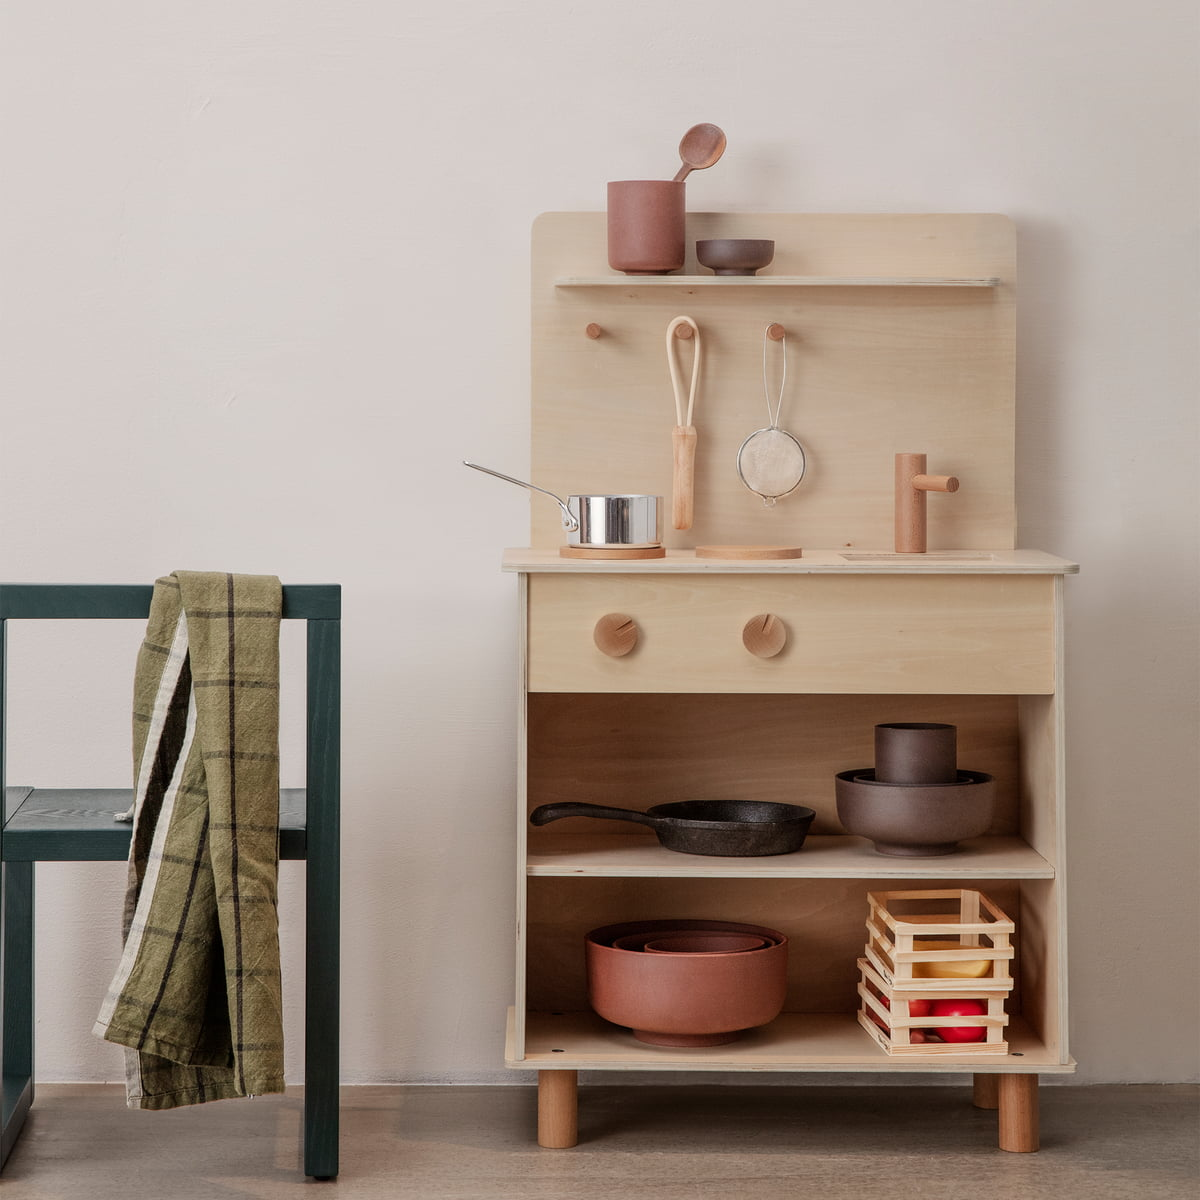 Ferm Living Kids Toro Play Kitchen